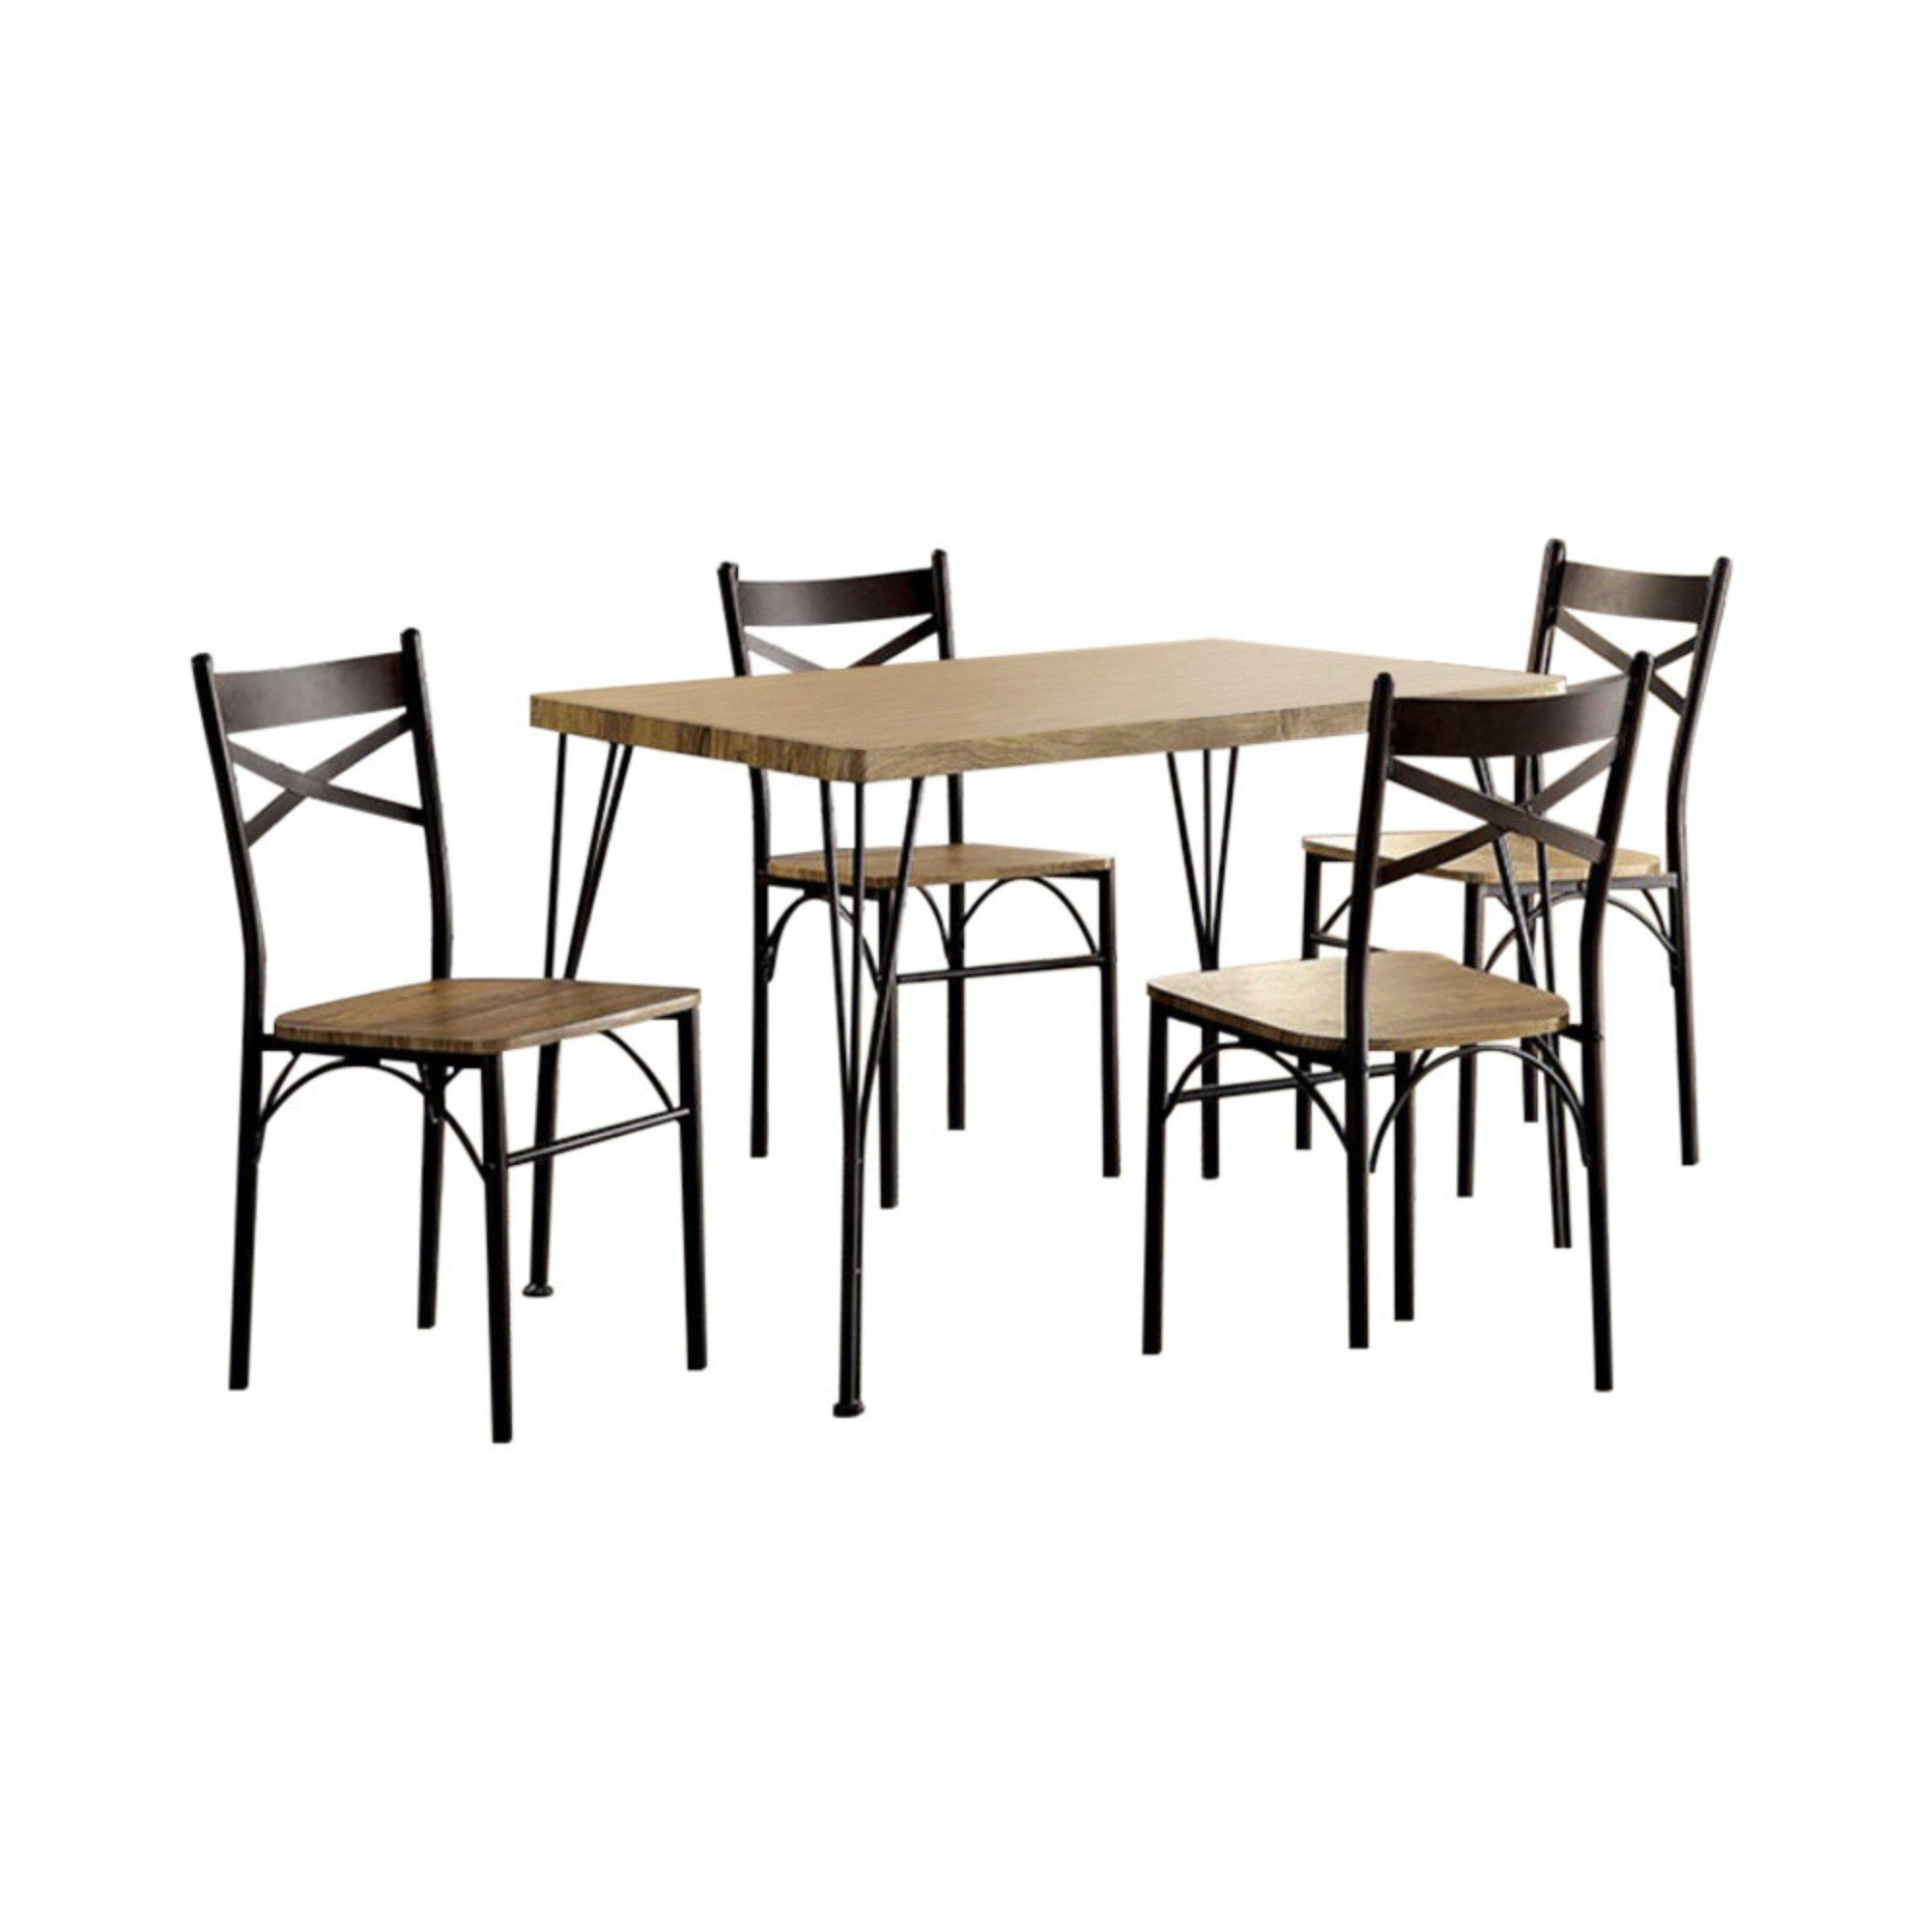 Owasco 5 Piece Dining Set With Regard To Best And Newest Casiano 5 Piece Dining Sets (Image 15 of 20)